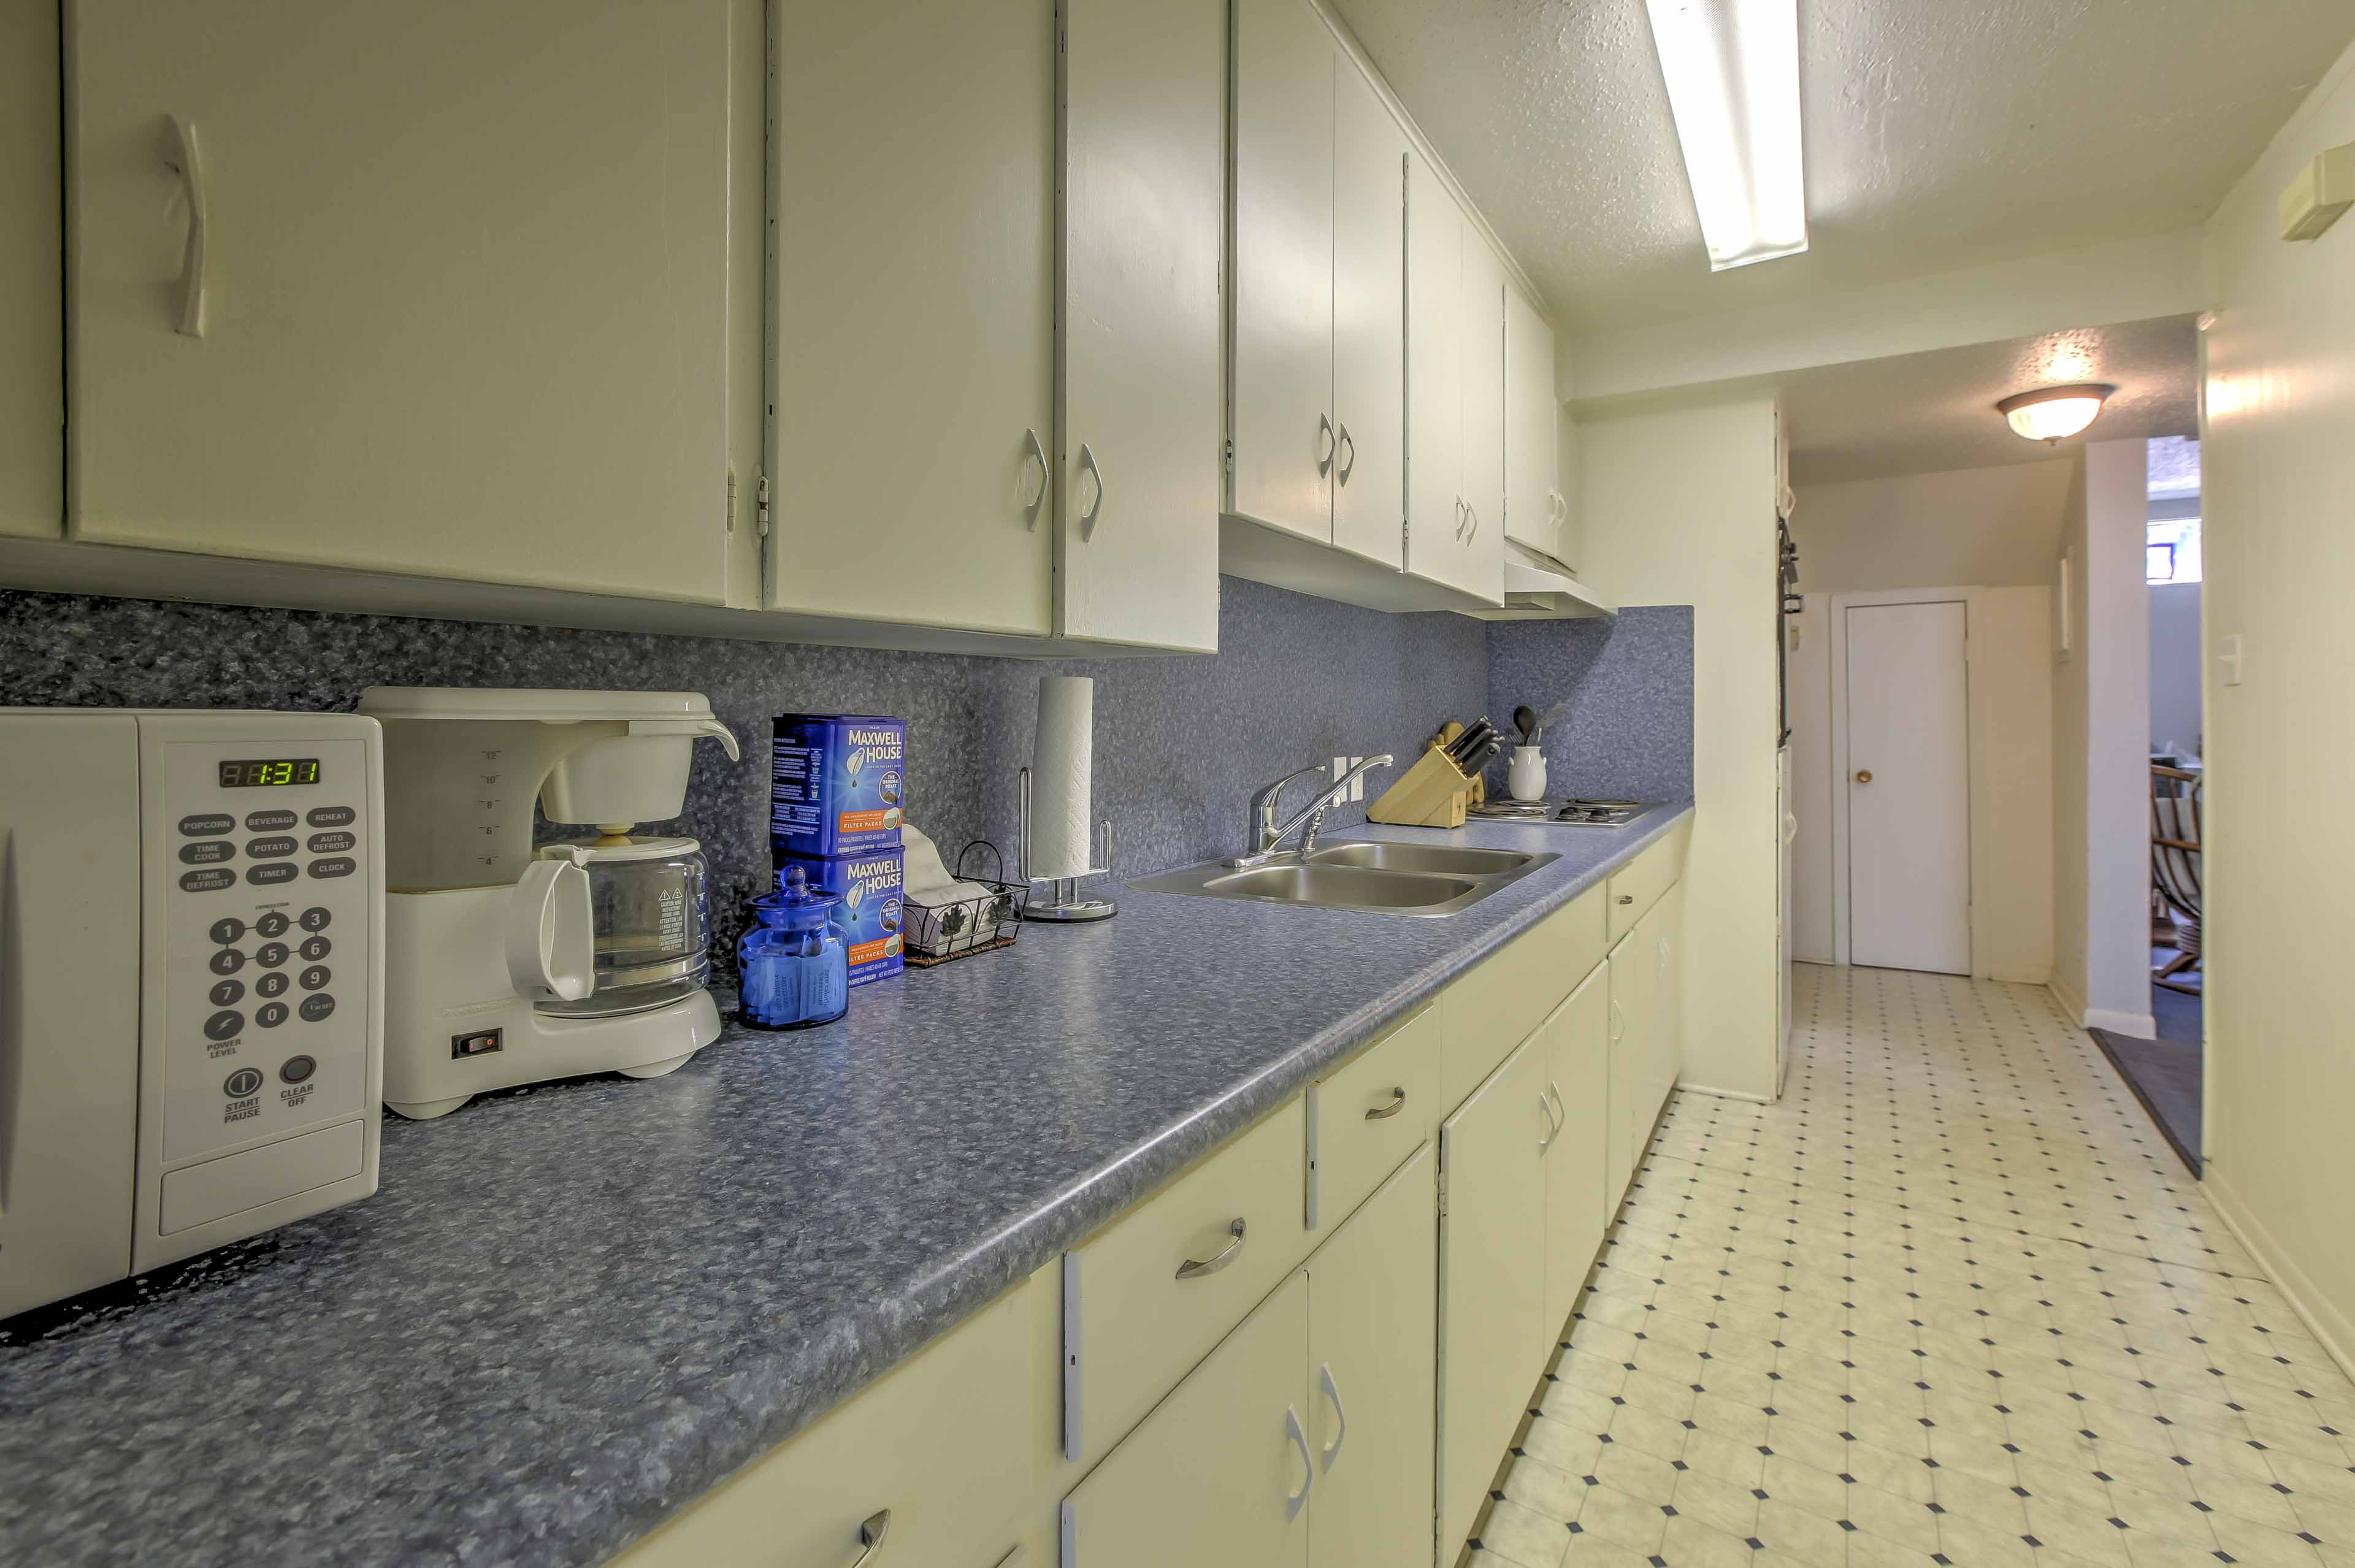 The kitchen has plenty of counter space to prepare any recipe.